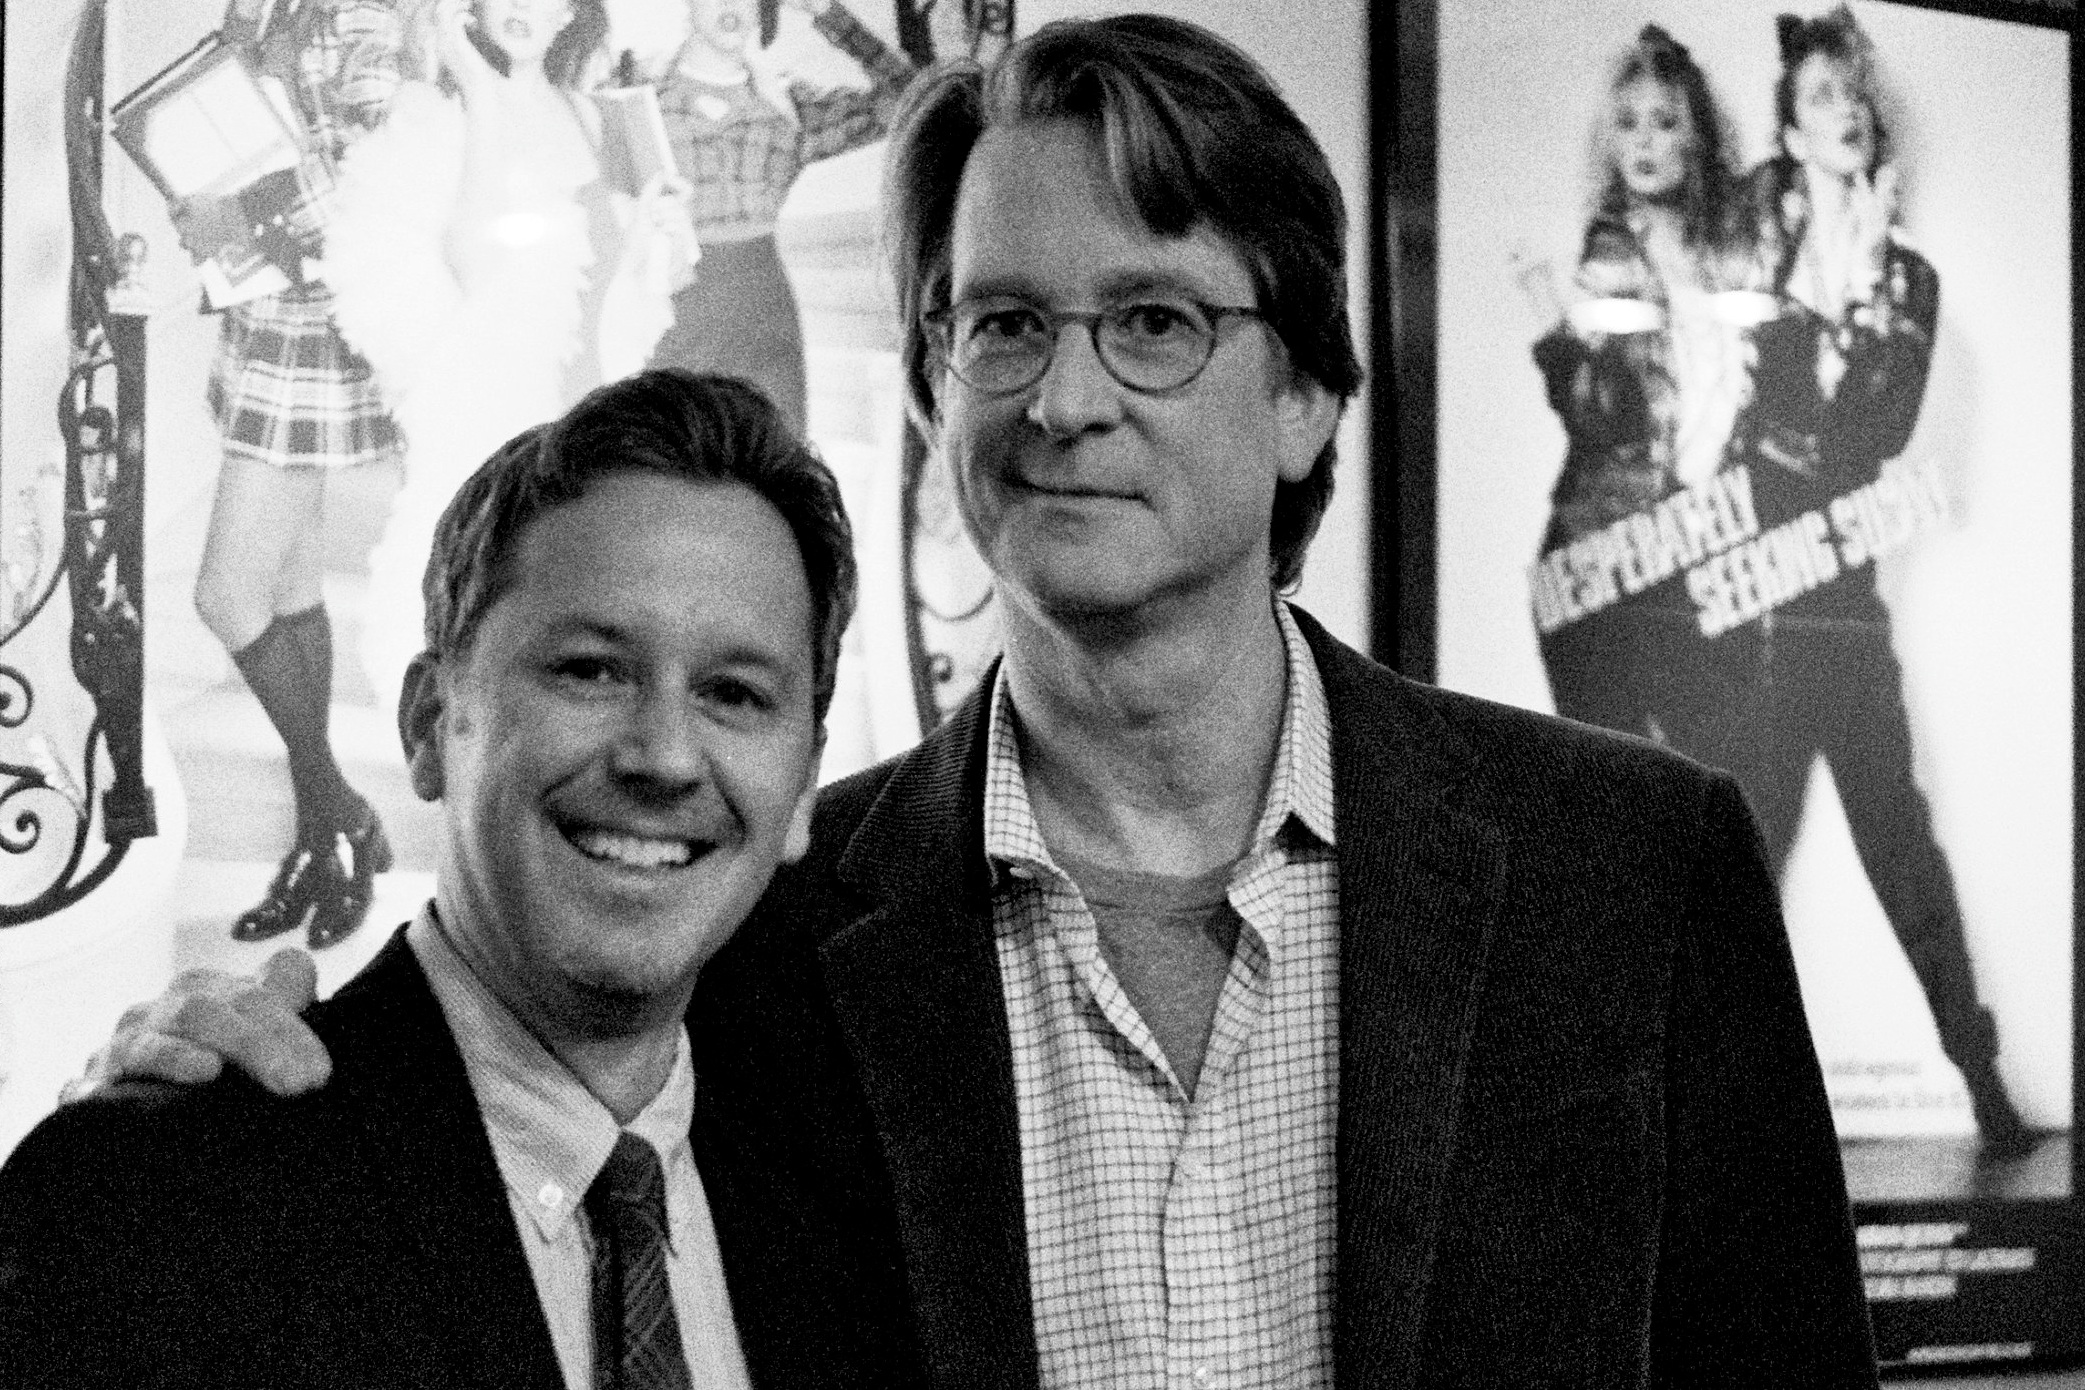 With screenwriter David Koepp ( Jurassic Park, Mission: Impossible, Spider-Man, War of the Worlds, Jack Ryan: Shadow Recruit ) at the 101 Things I Learned in Film School colloquy at the Cantor Film Center in Manhattan.